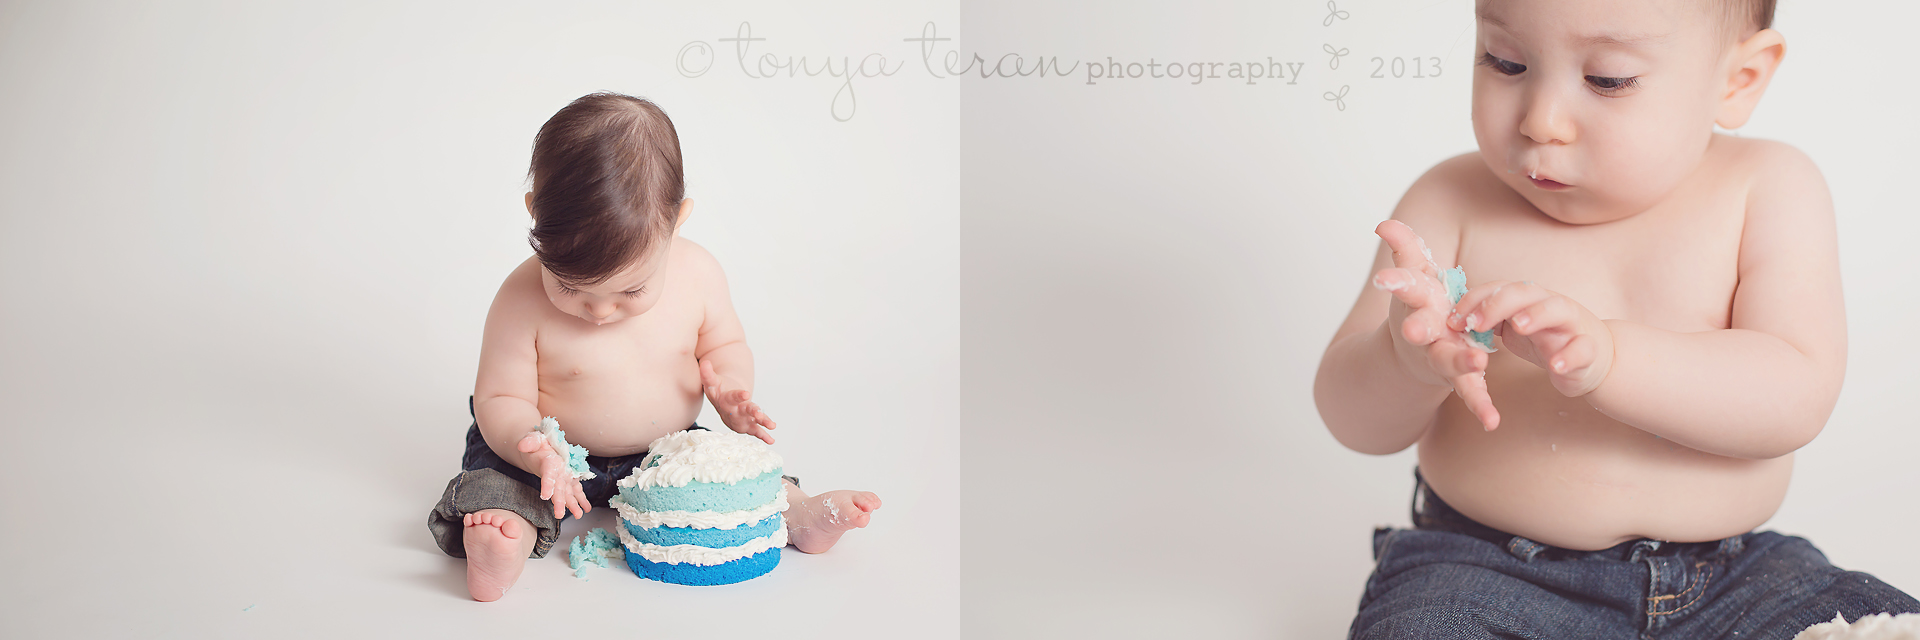 Rockville, MD Baby Birthday Cake Smash Photographer | Tonya Teran Photography